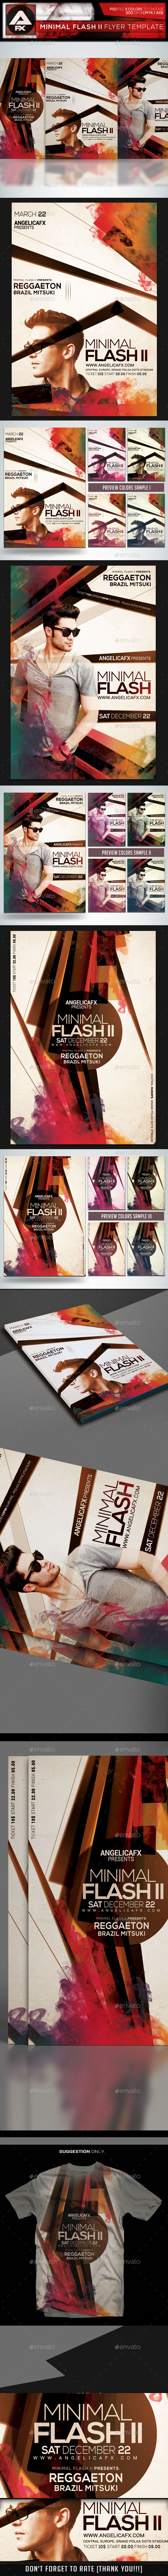 Minimal Flash II Flyer Template - Flyers Print Templates